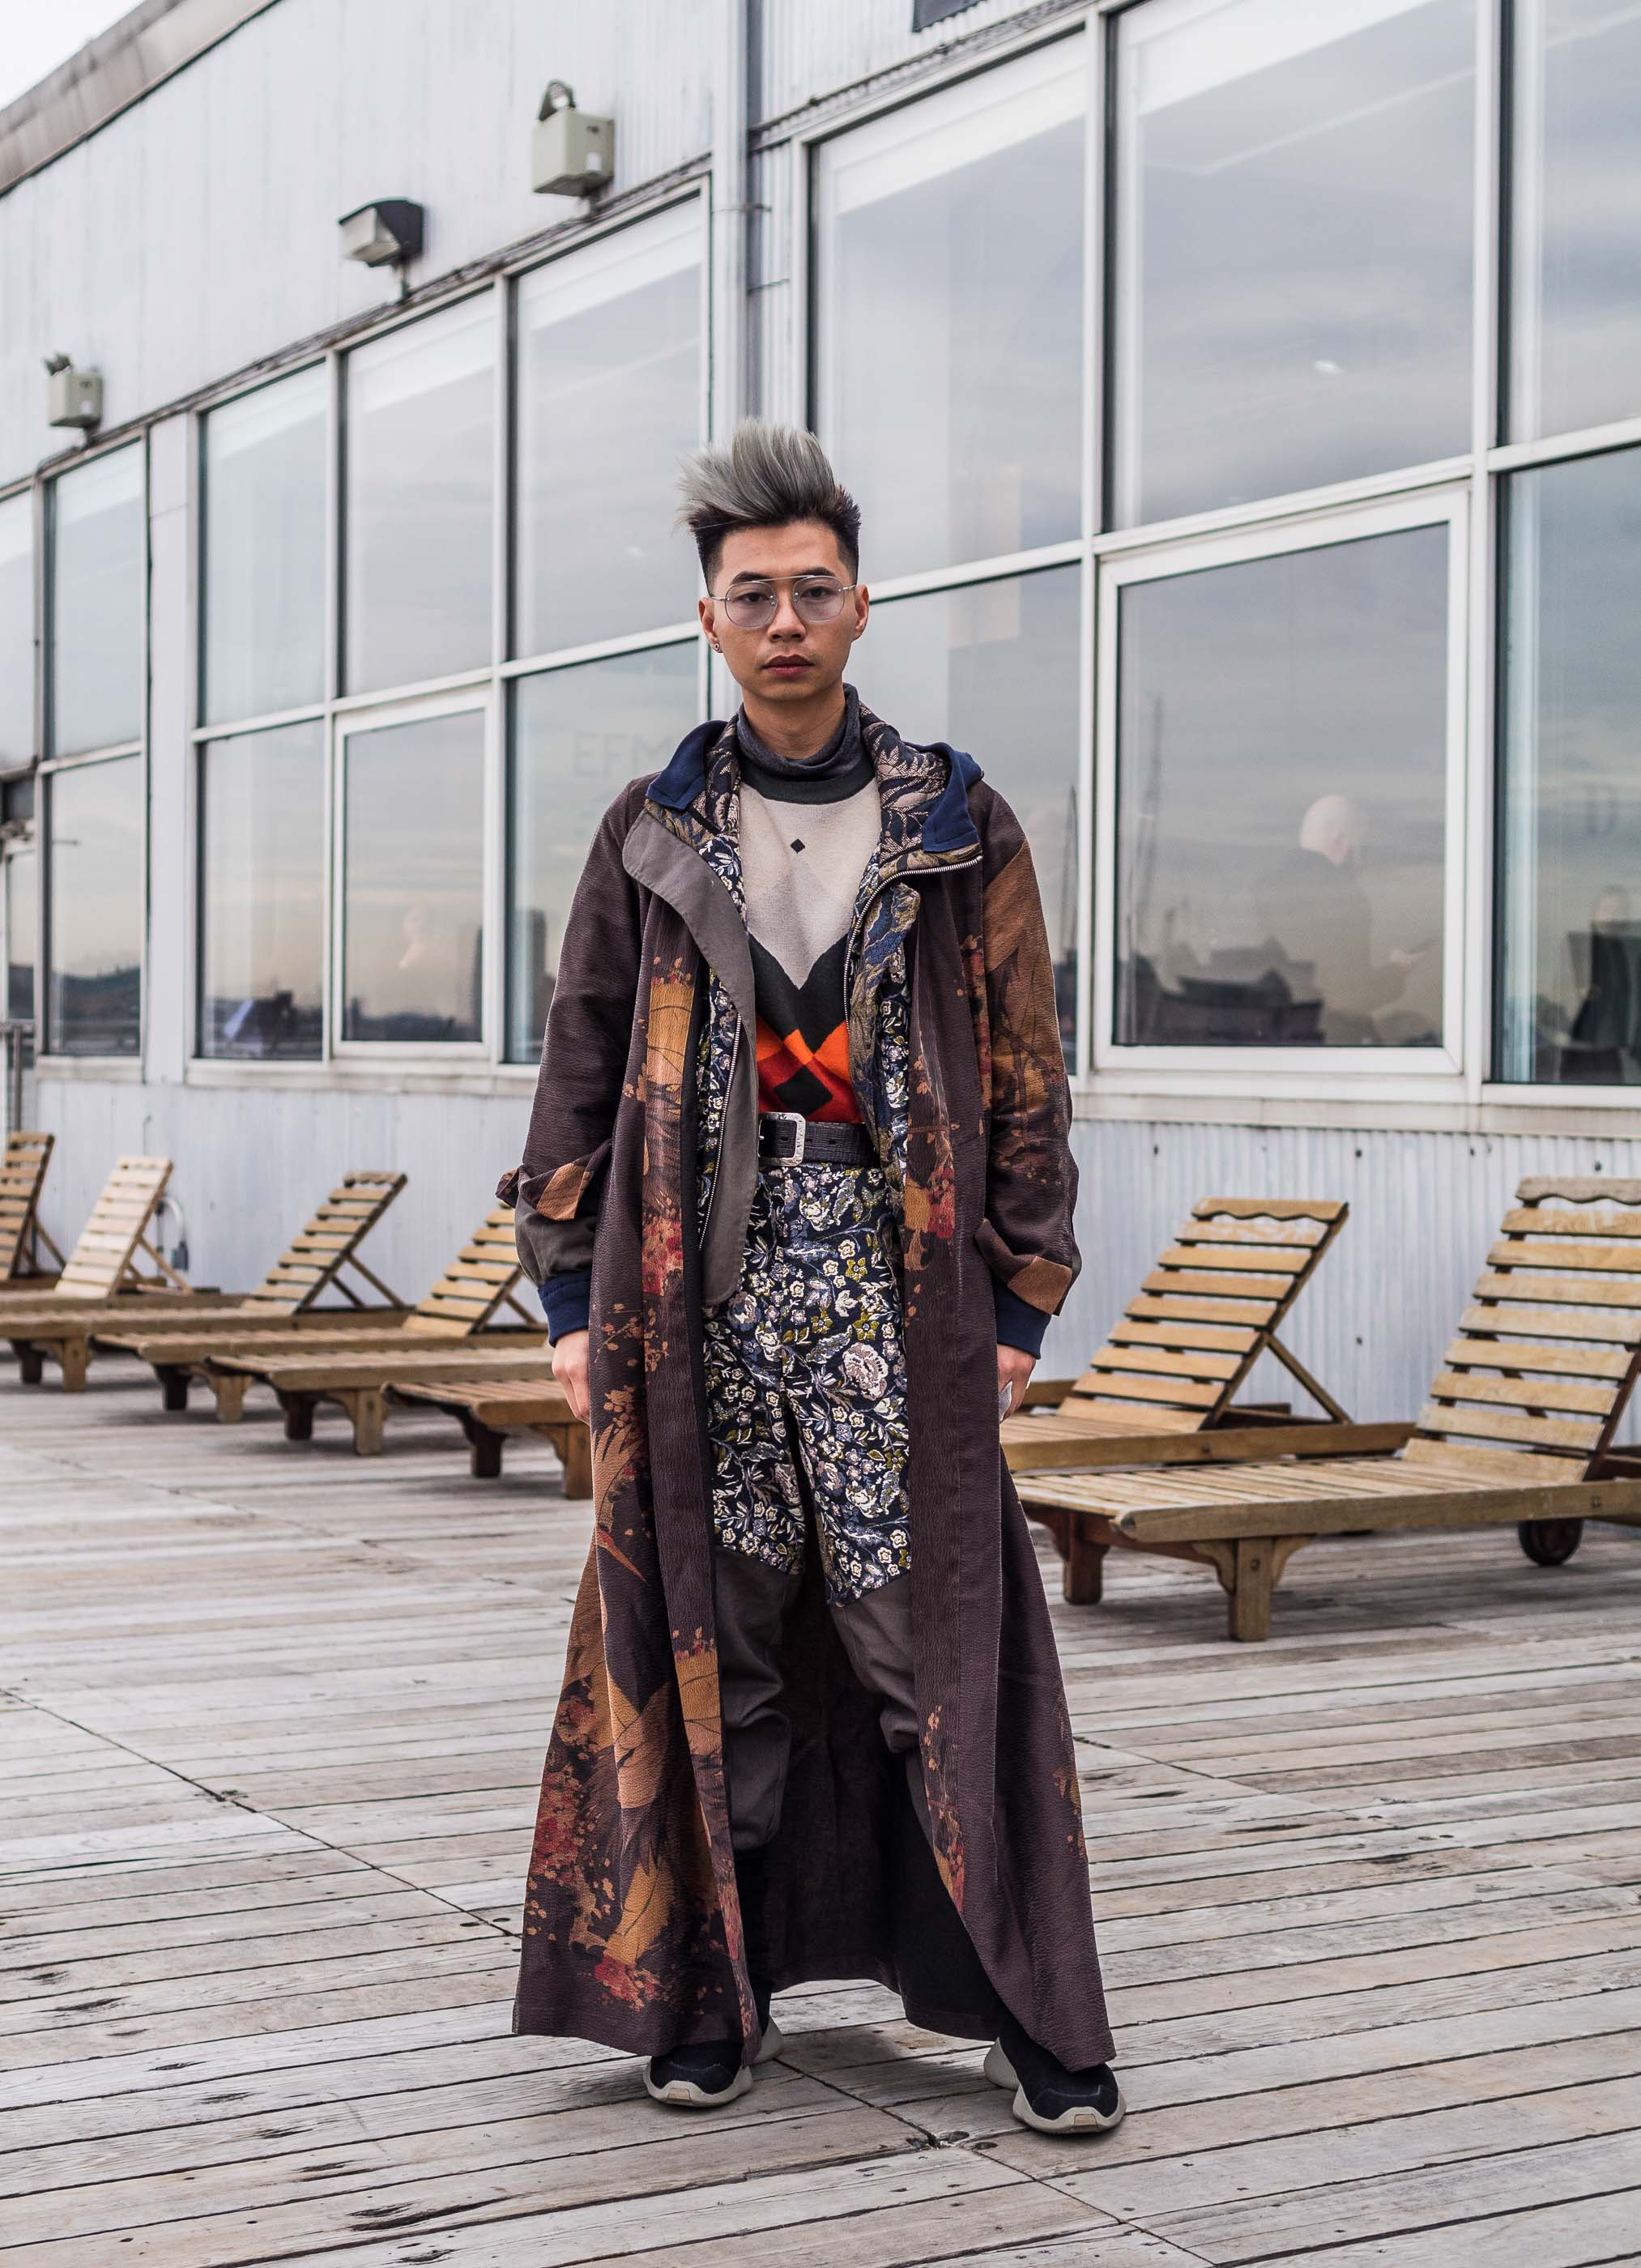 Day 1  2  3  4  and 5  A Recap of my NYFWM Streetstyle Looks     Day 1  2  3  4  and 5  A Recap of my NYFWM Streetstyle Looks     MYBELONGING    High Fashion  Gender Neutral Menswear  Food and Travel Experiences